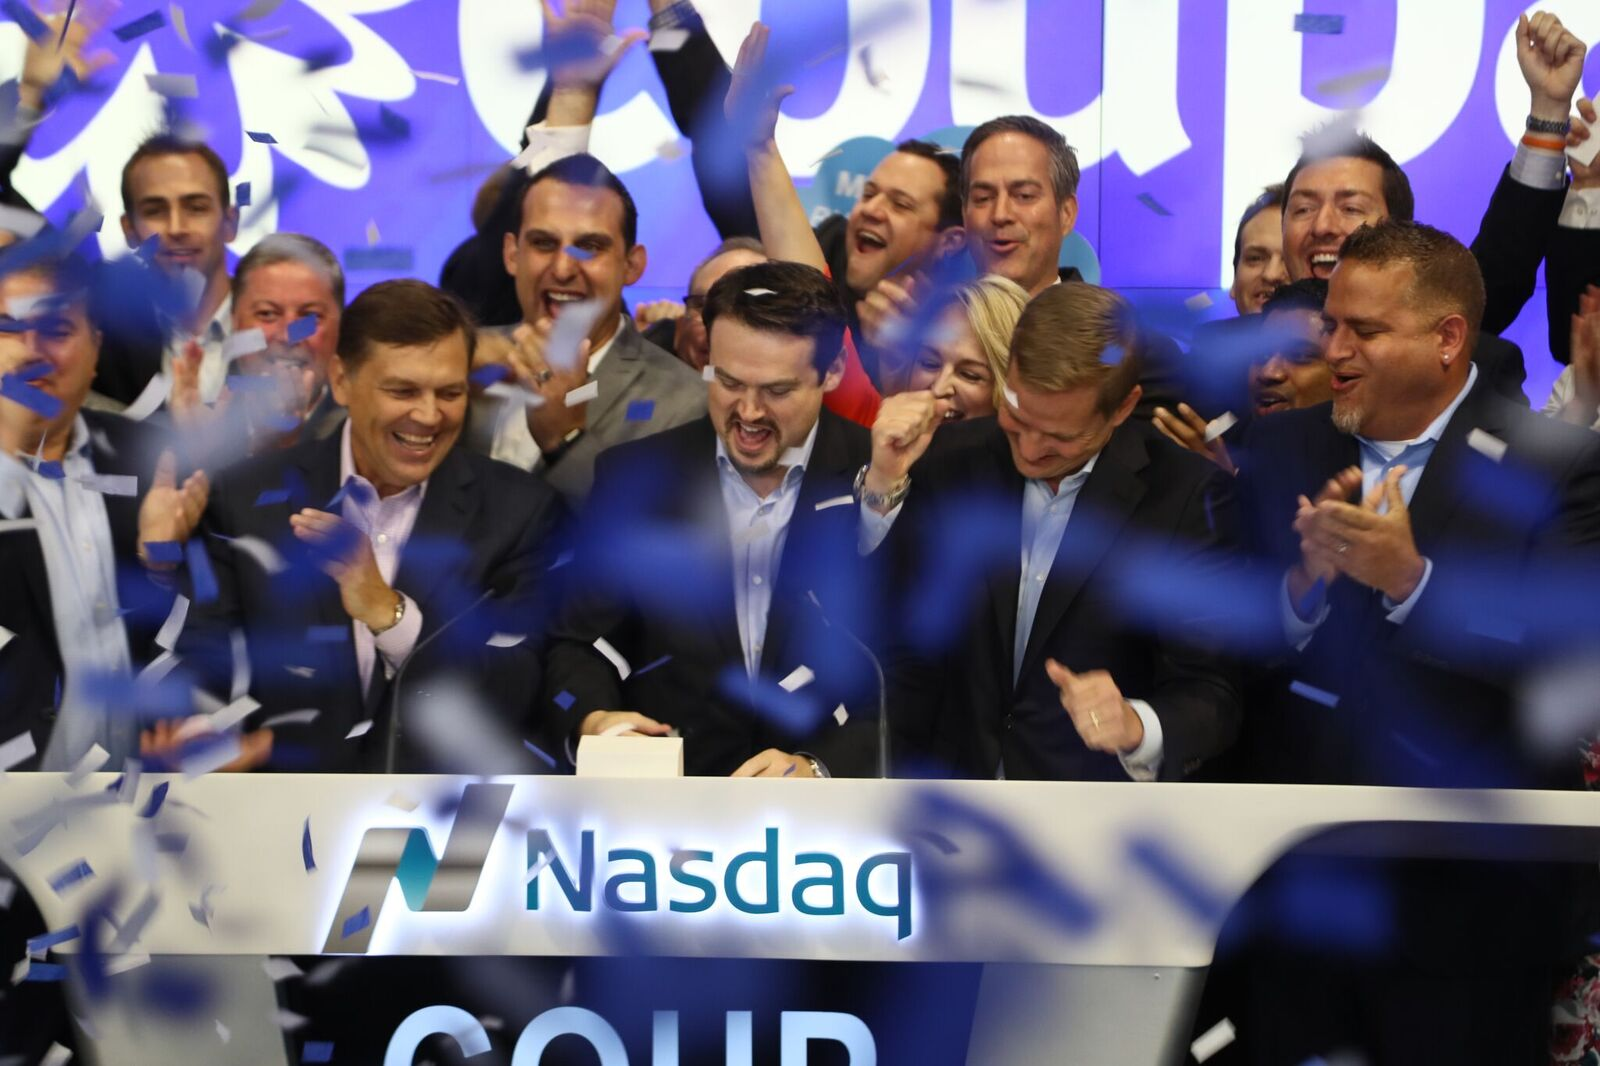 Coupa CEO Rob Bernshteyn rings the Nasdaq opening bell to celebrate his cloud software firm's October 6, 2016, trading debut.